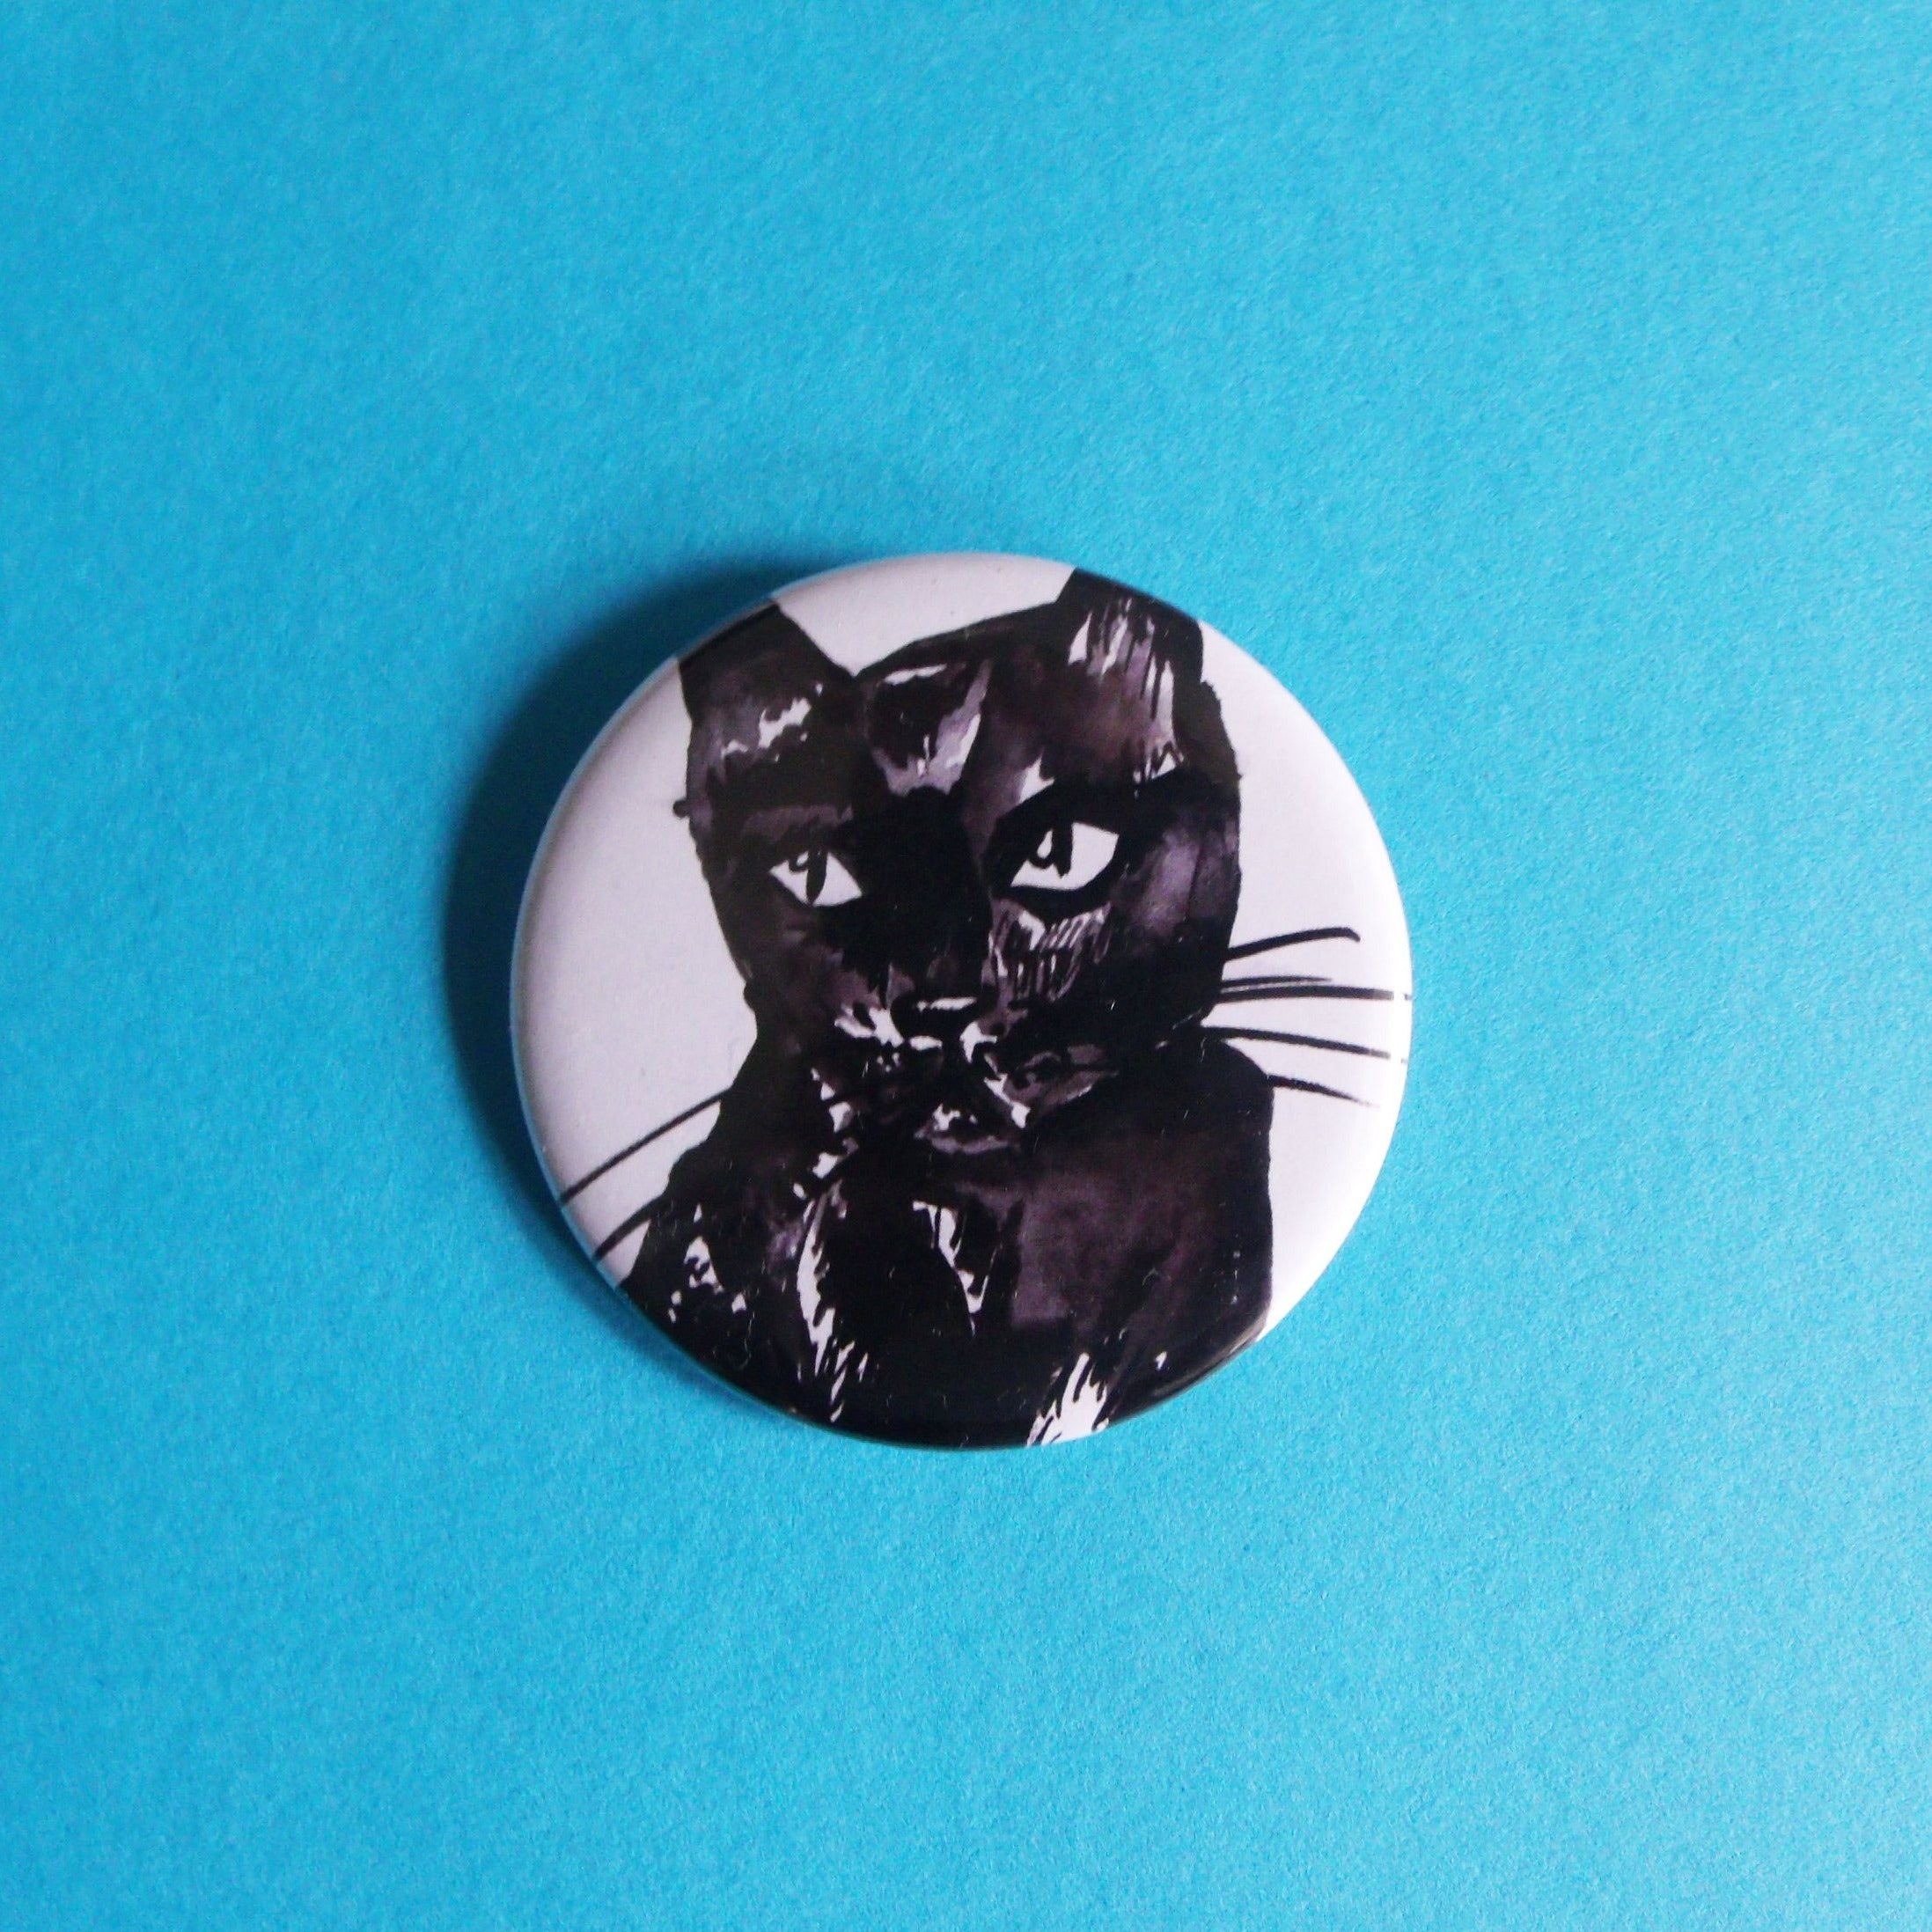 Large button badge. It features an ink illustration of a black cat against a white background.